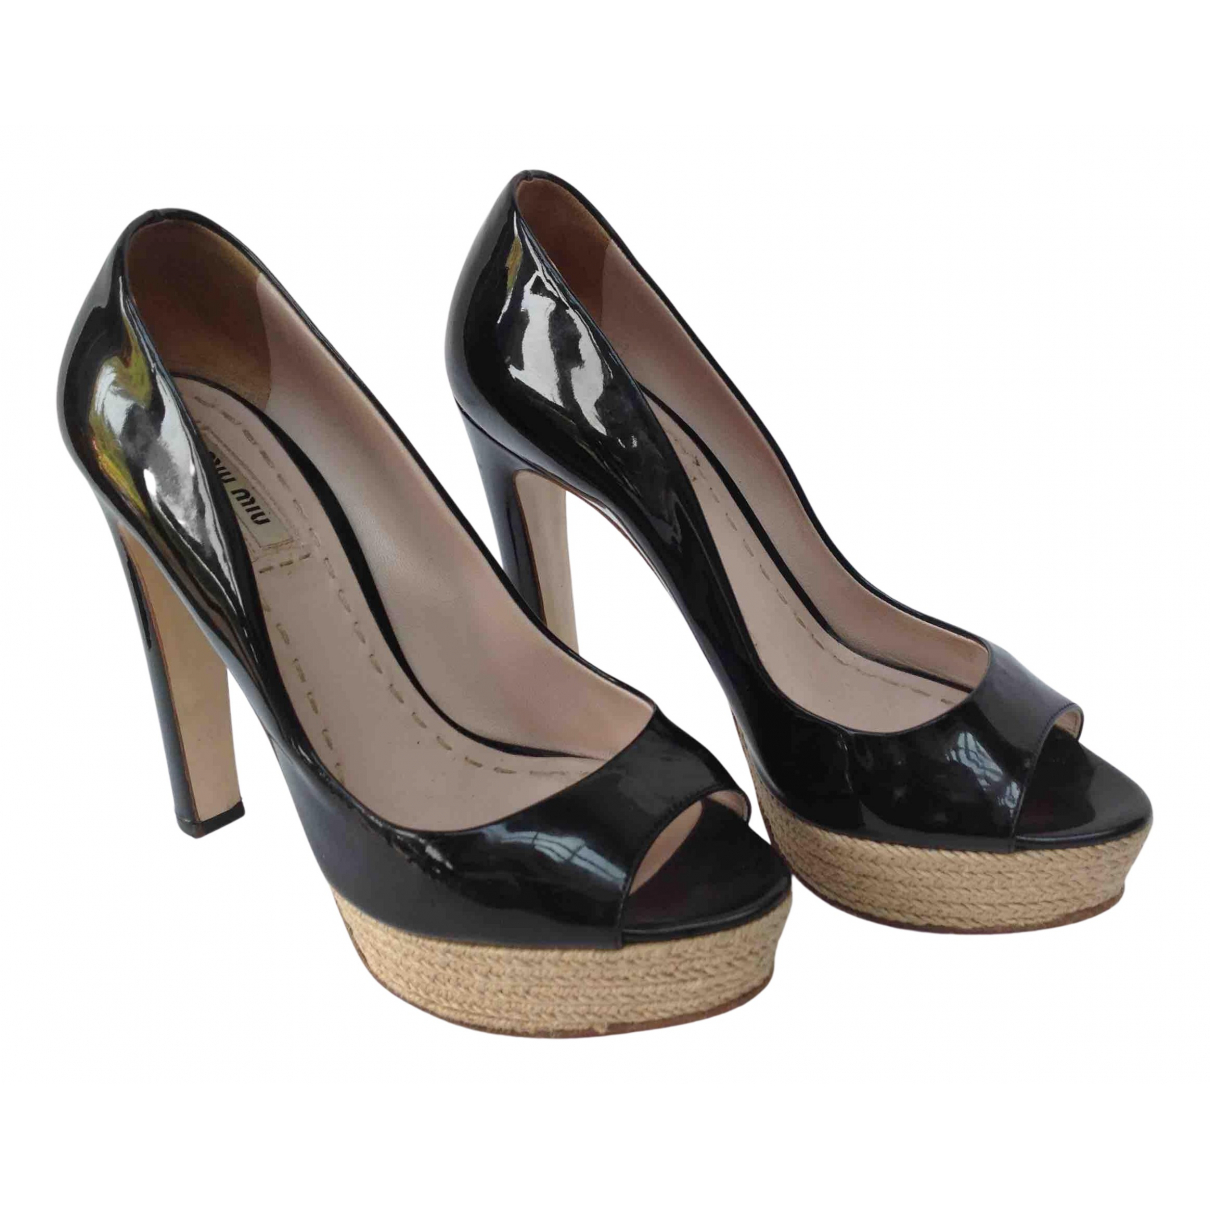 Miu Miu N Black Patent leather Heels for Women 38 EU